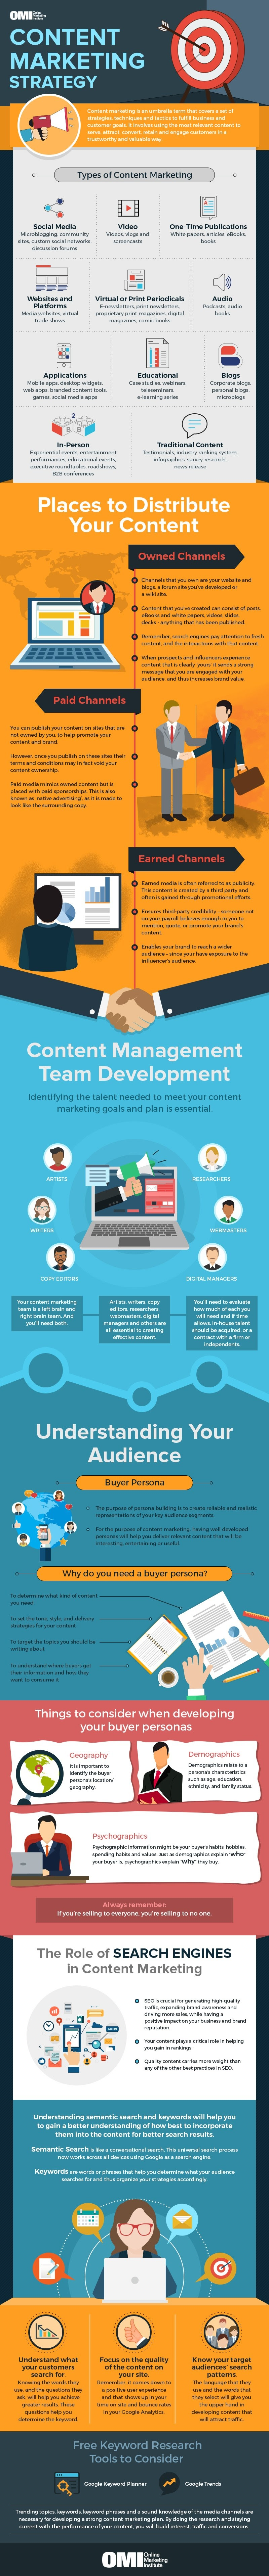 An Overview of Content Marketing [Infographic] | Social Media Today